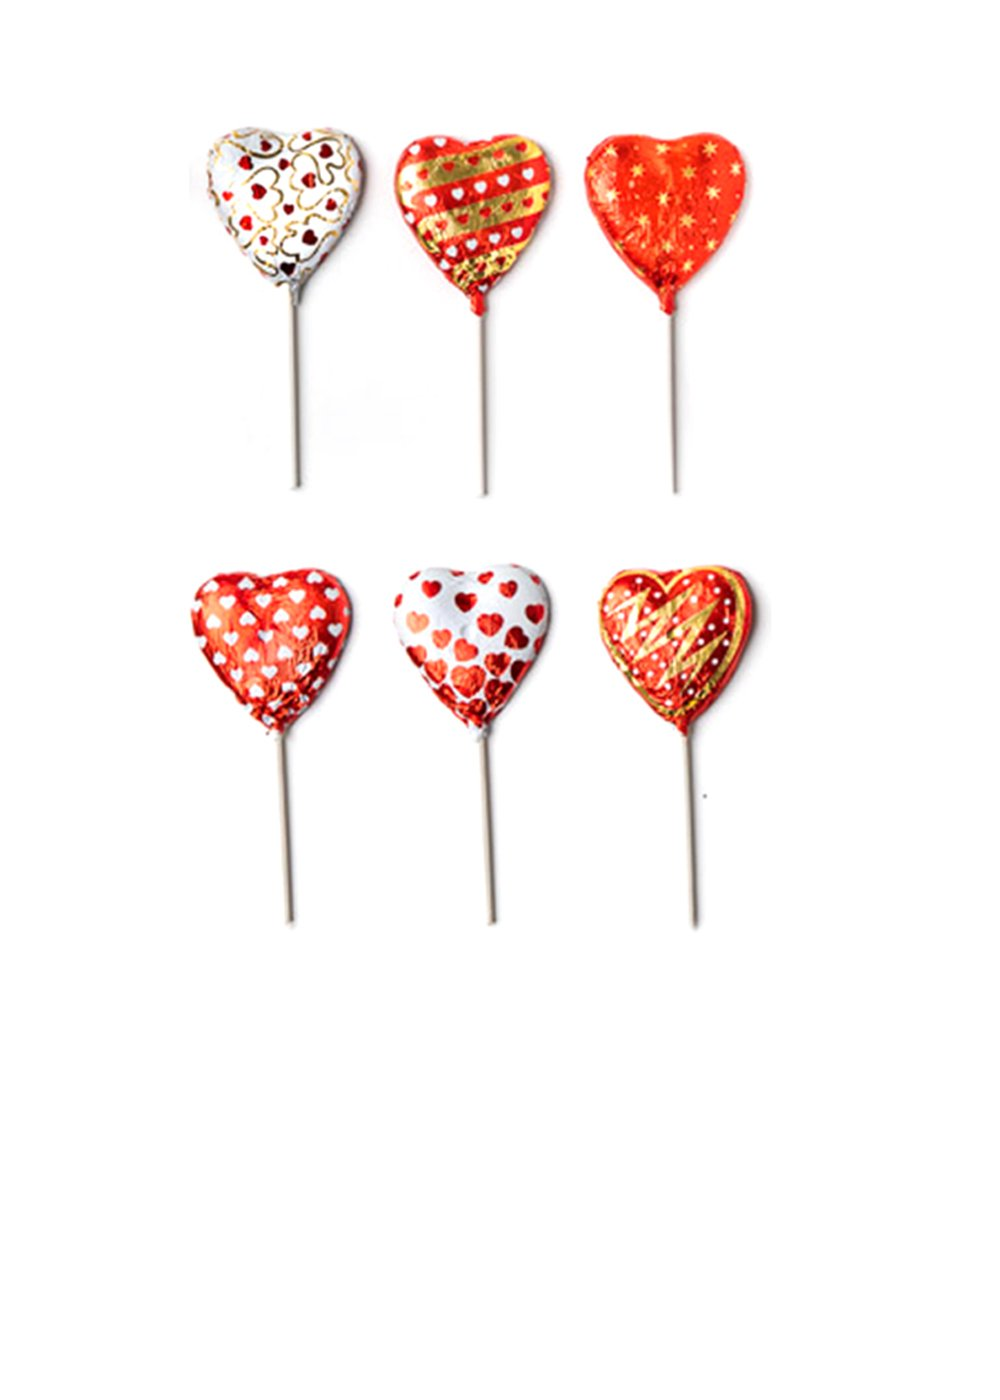 MAD - VALENTINE HEART POPS .5 OZ 24 CT